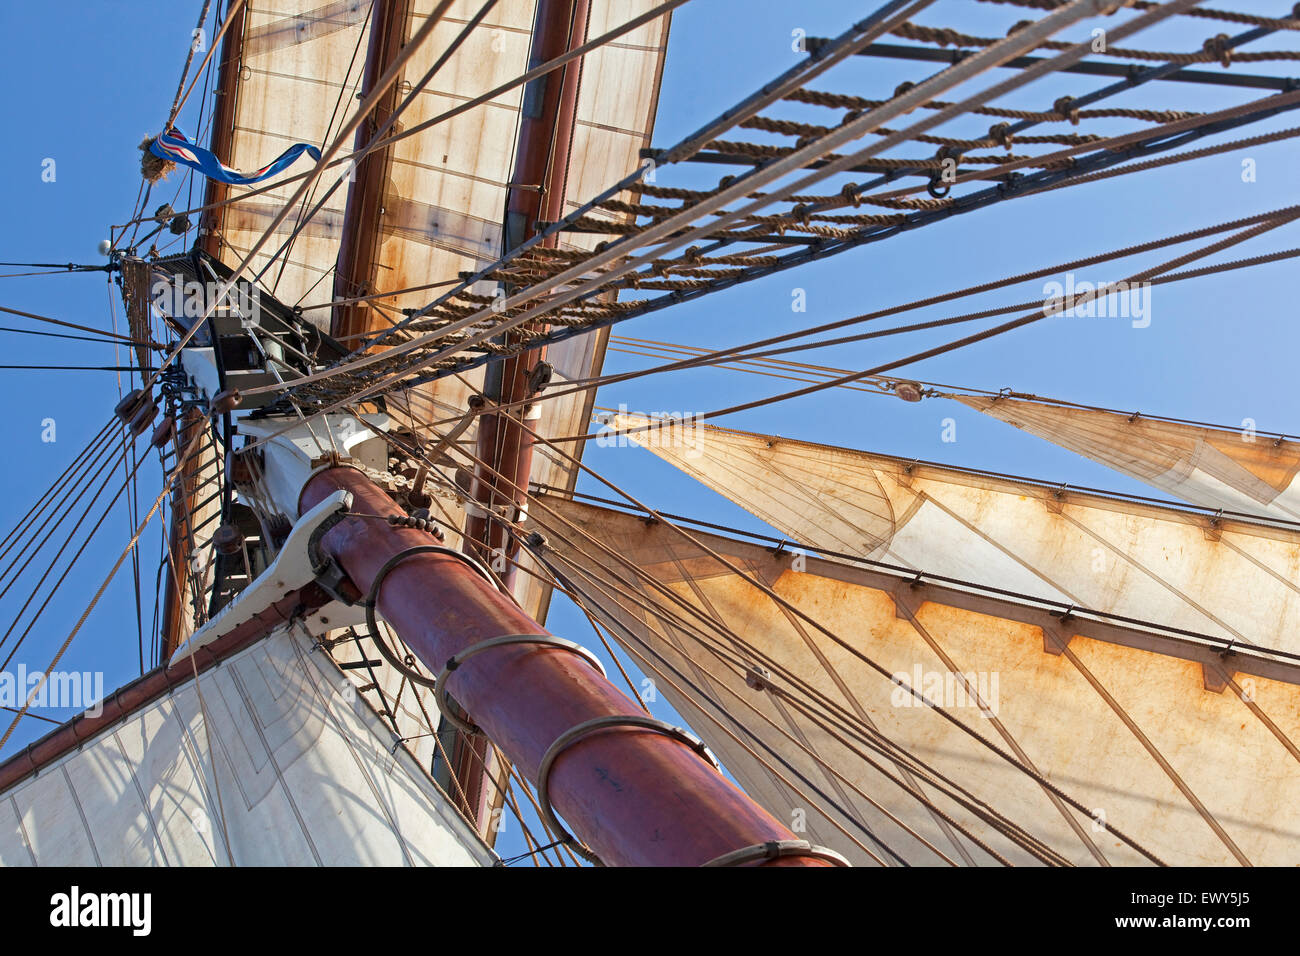 Mast, sails and rigging on board of the Oosterschelde, Dutch three-masted topsail schooner sailing the Atlantic - Stock Image